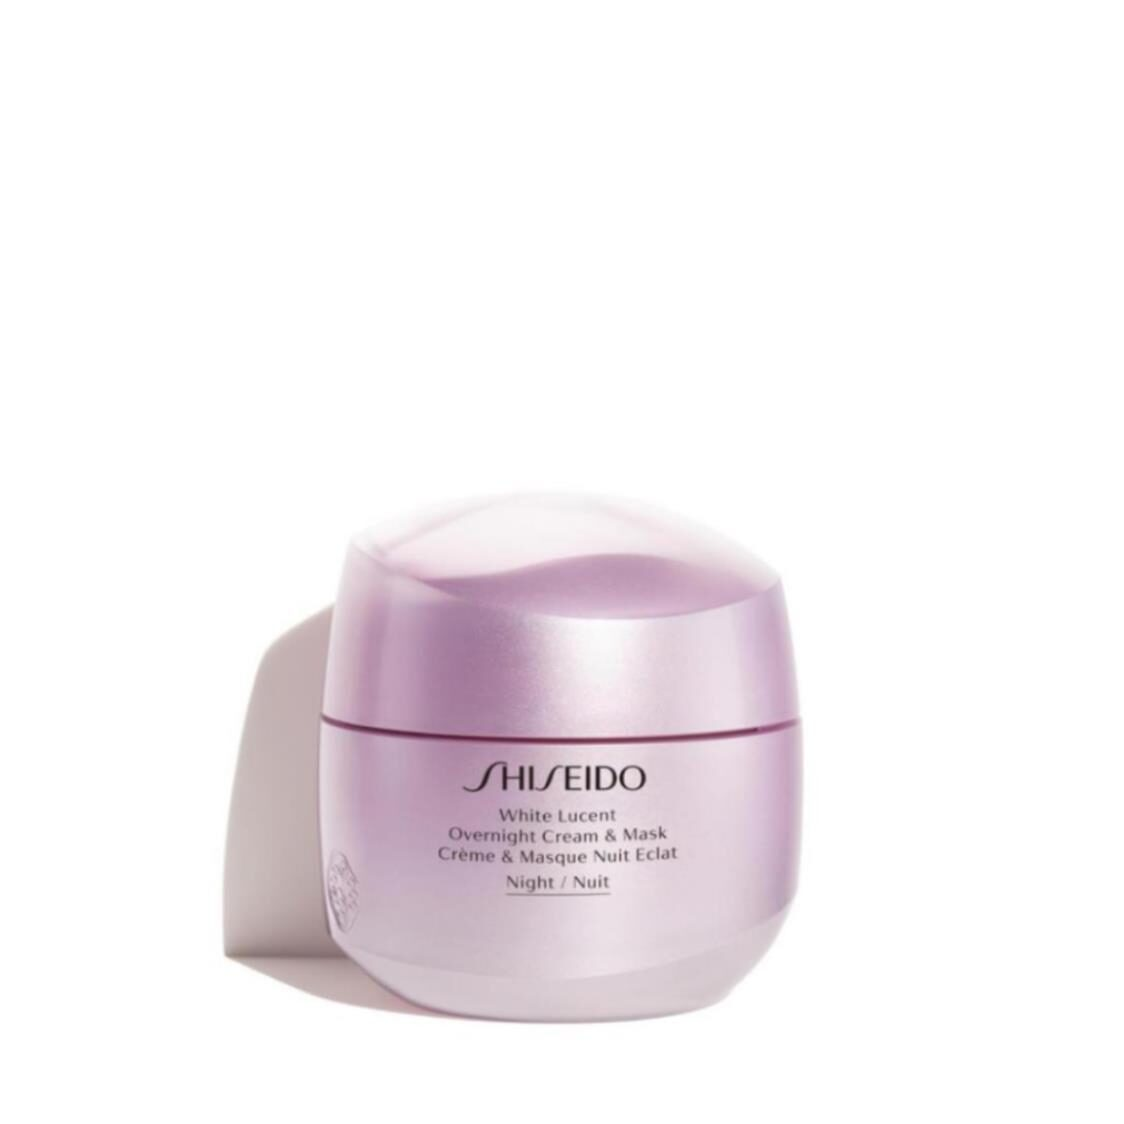 Shiseido White Lucent Overnight Cream and Mask